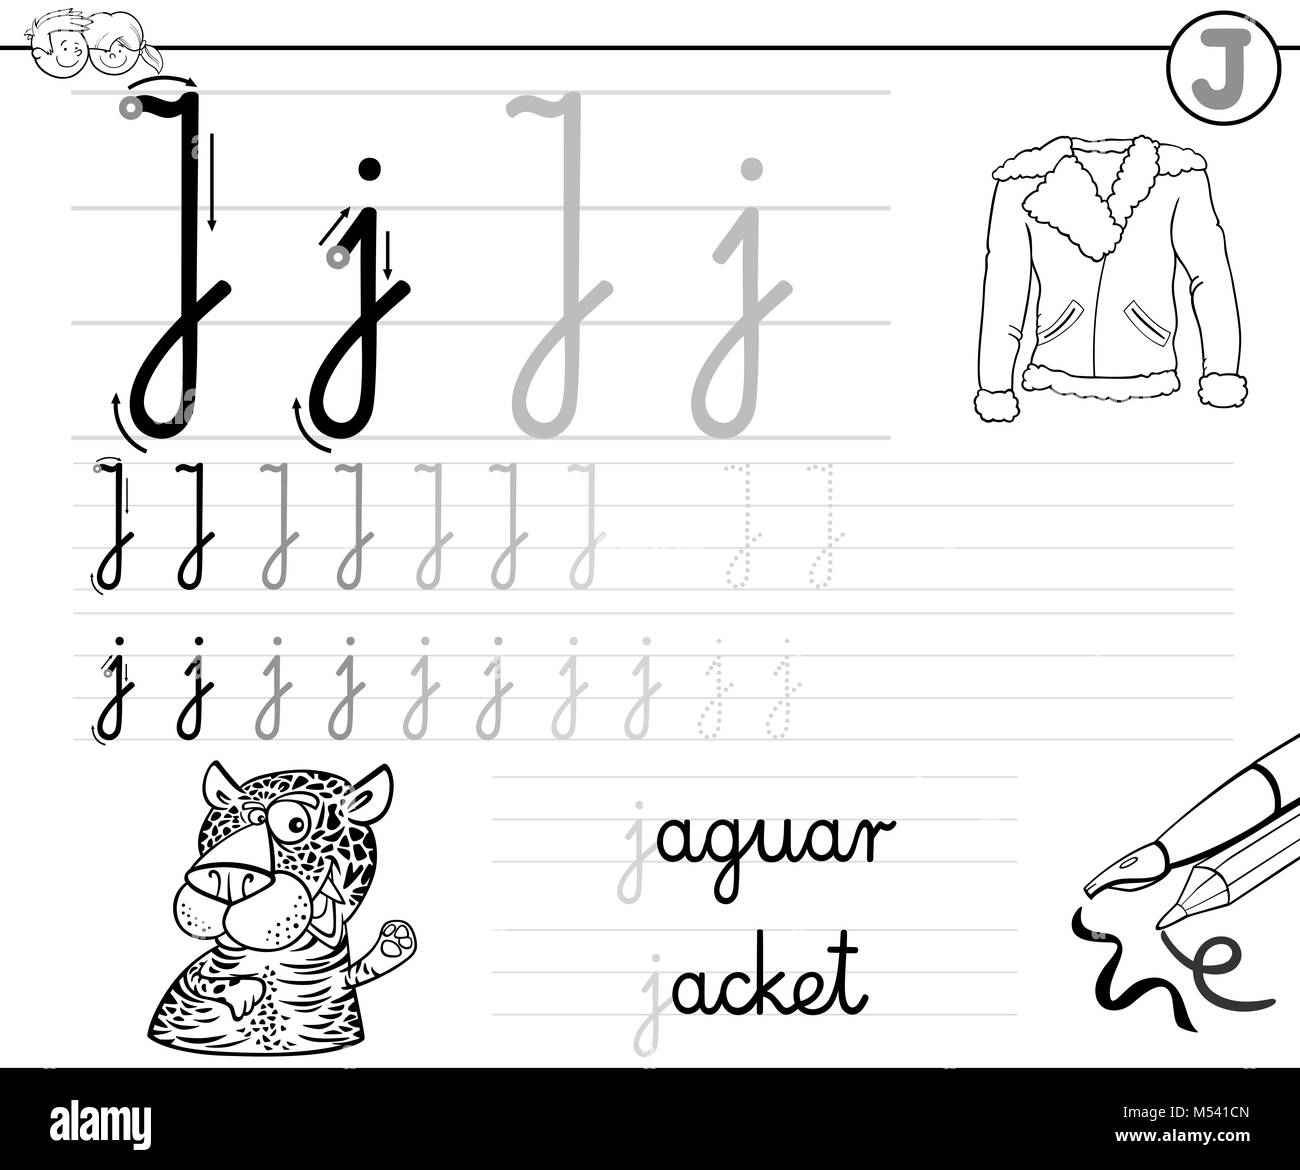 learn to write letter J workbook for kids - Stock Image